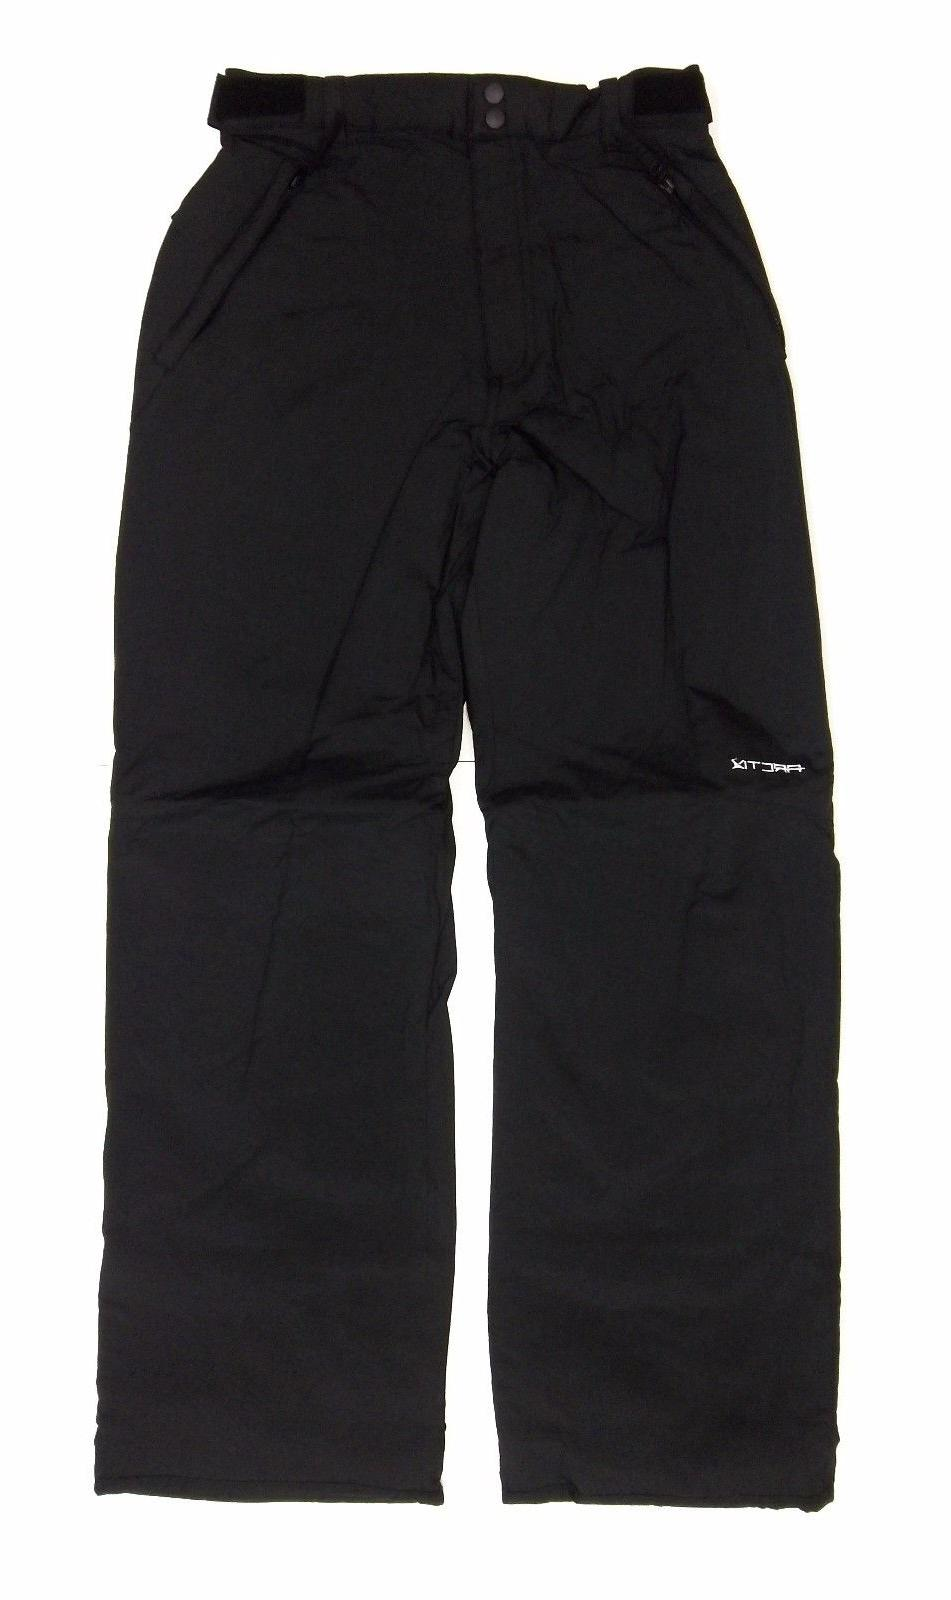 Arctix 1800 Women's Ski Pants Black Large